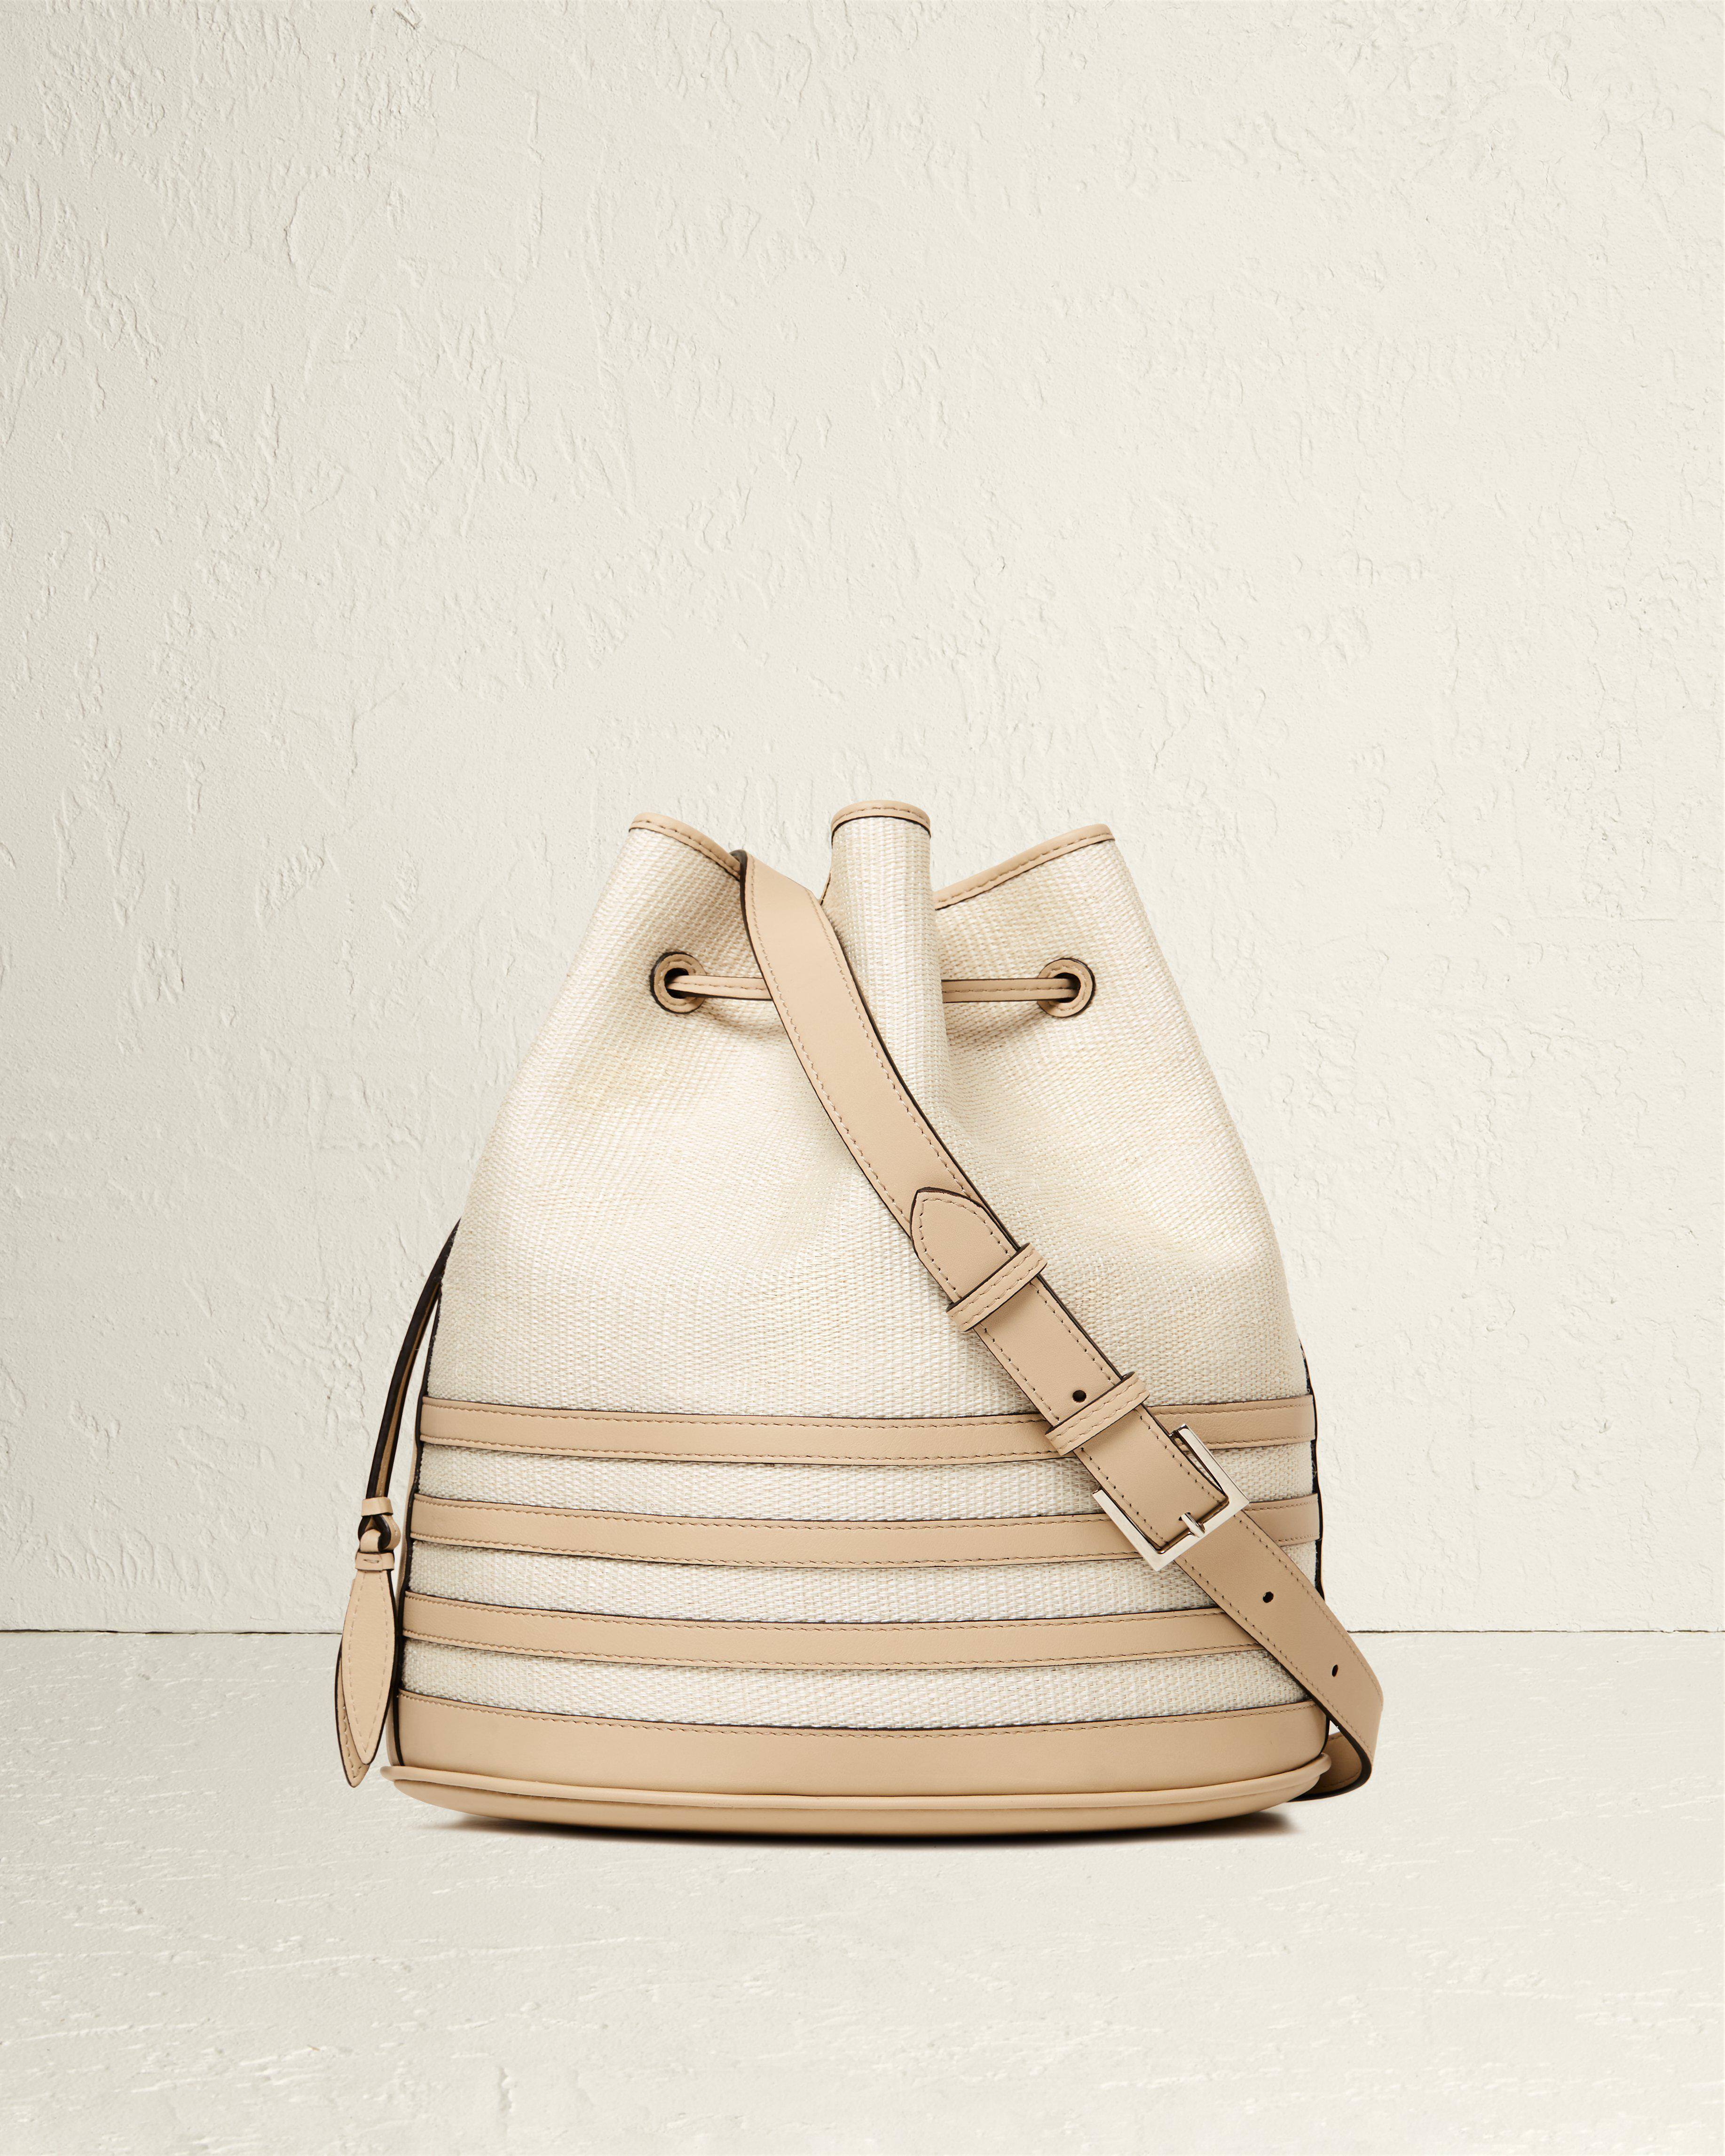 The Extra Large Drawstring in Nappa Horizontal Stripes and Fique